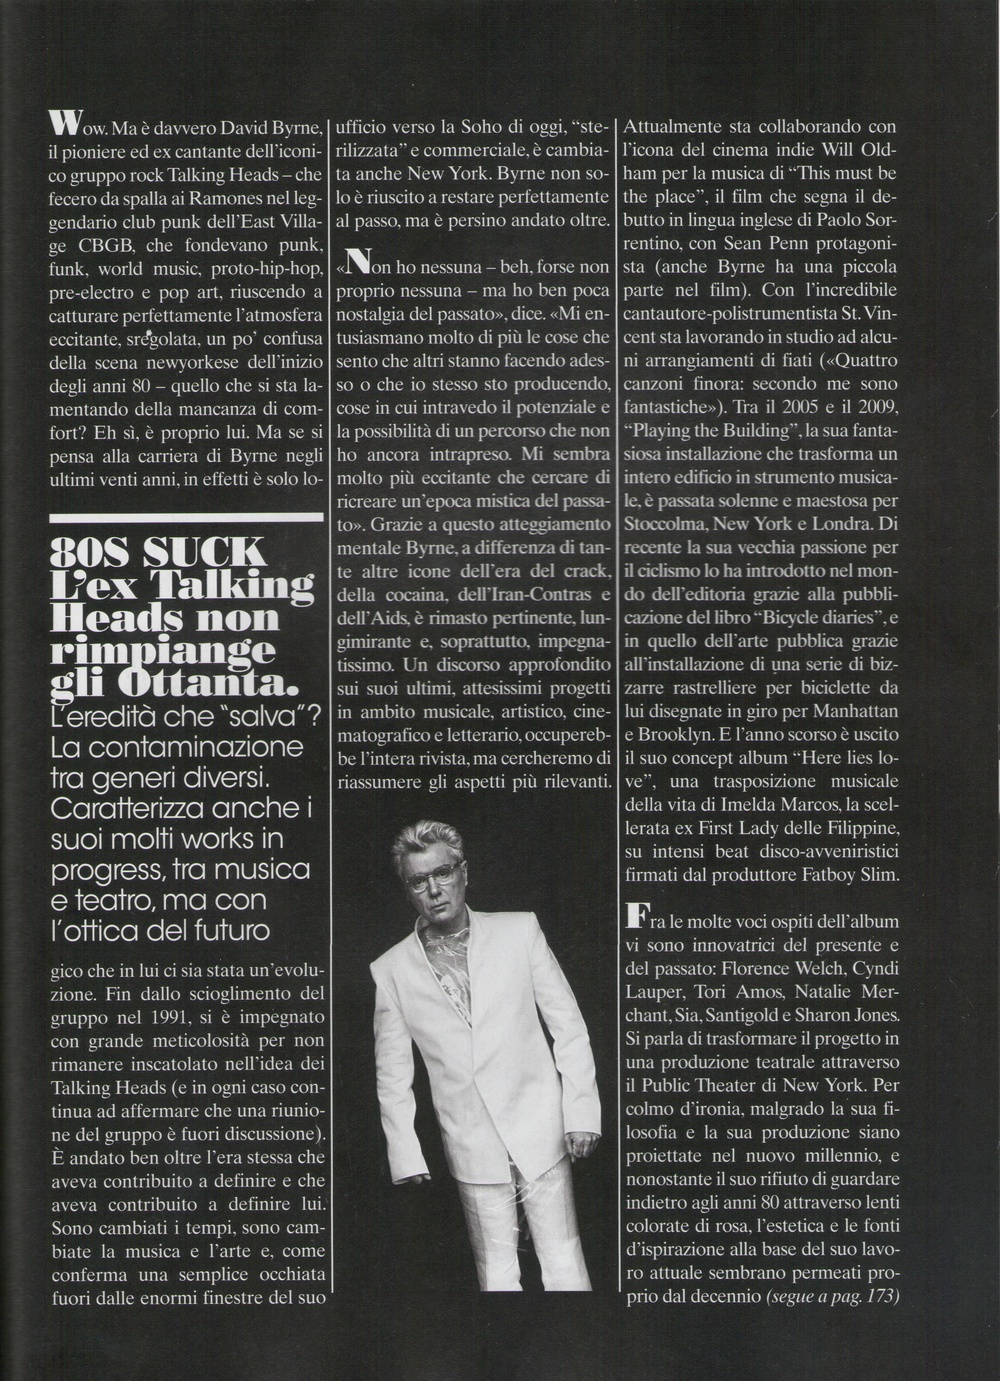 Cover story on David Byrne for  L'Uomo Vogue , April 2011